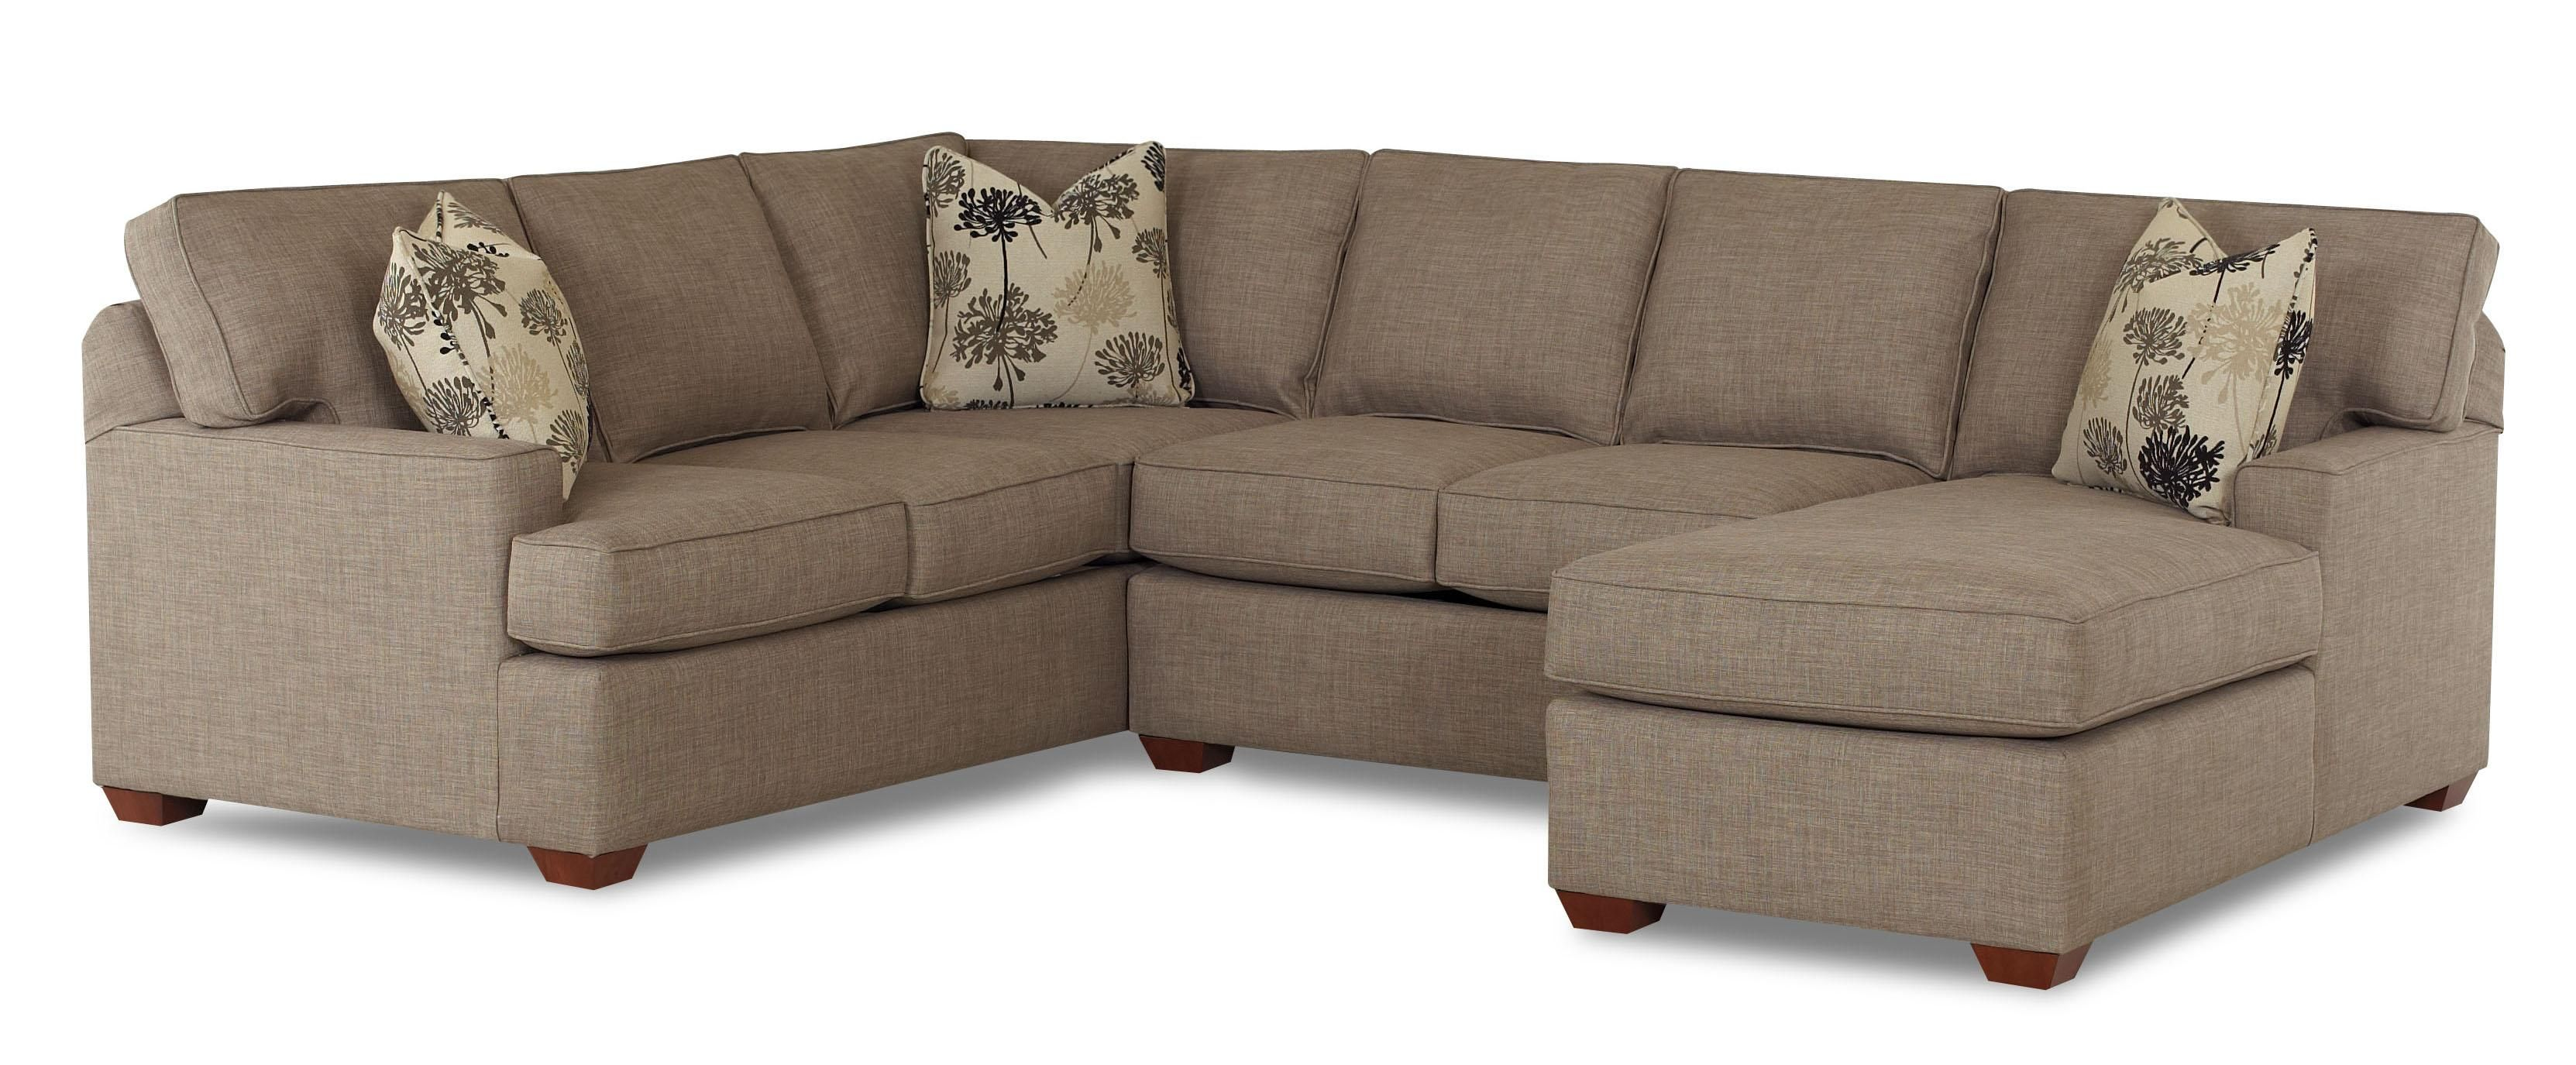 Pantego 3 Piece Sectional Sofa With Laf Chaise By